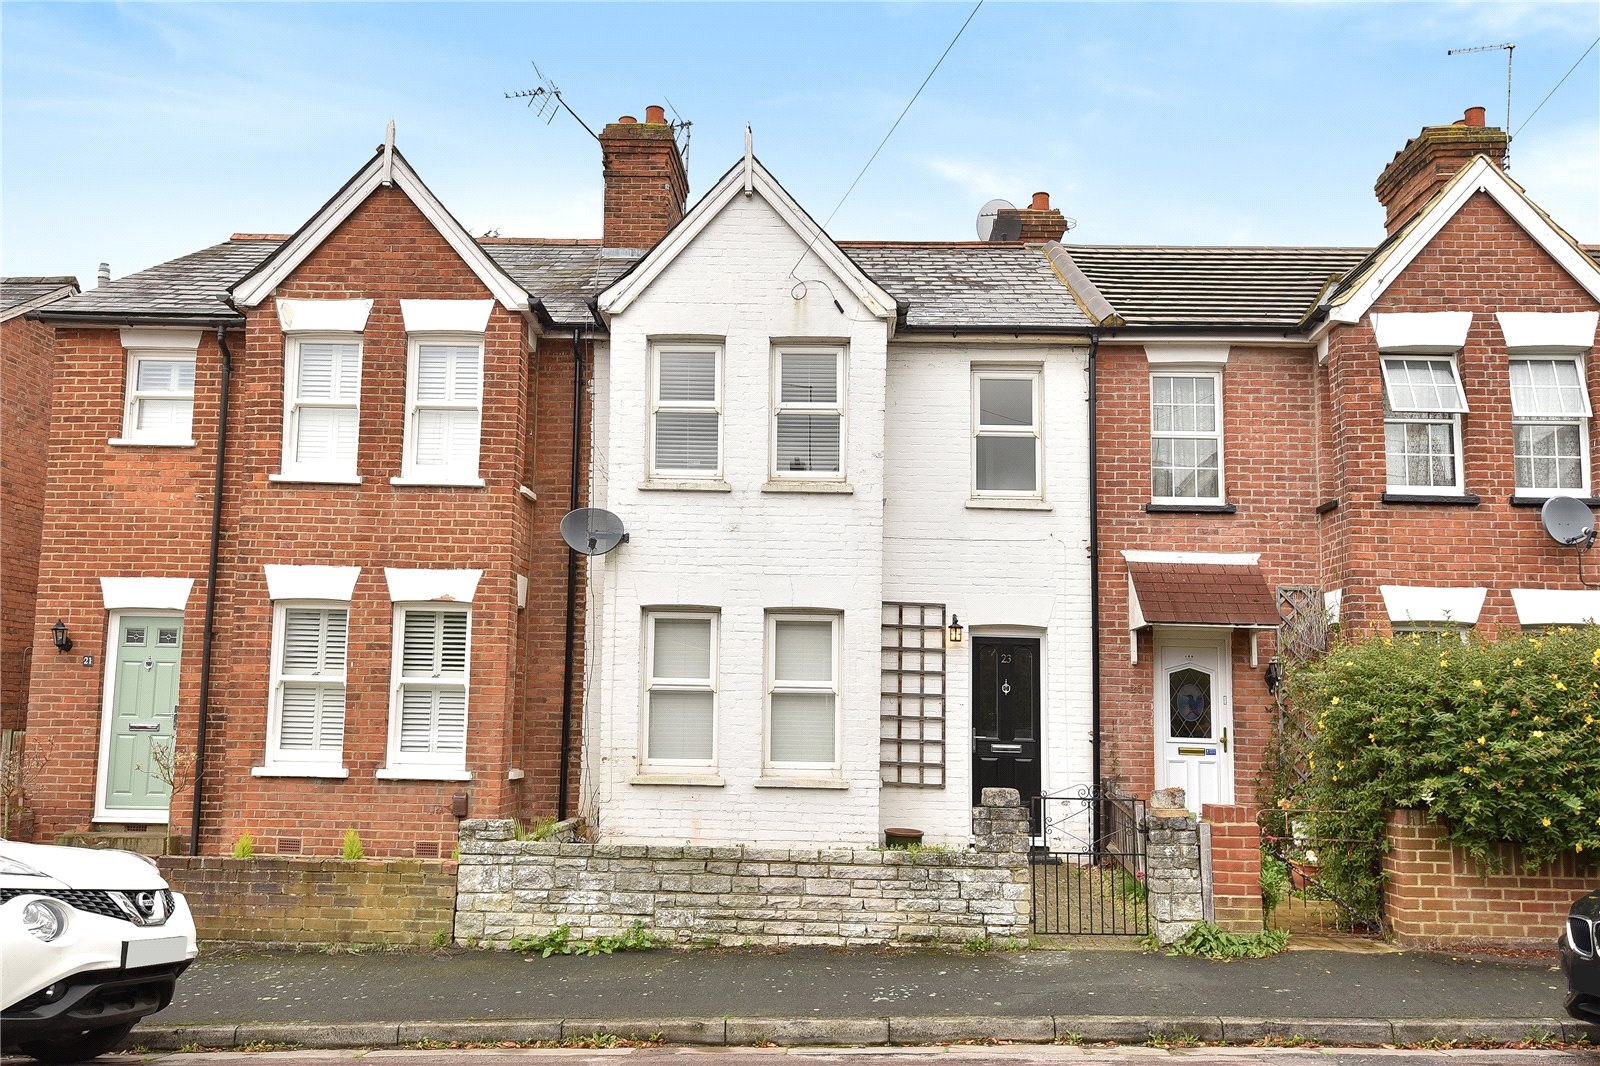 2 Bedrooms Terraced House for sale in Cromwell Road, Camberley, Surrey, GU15